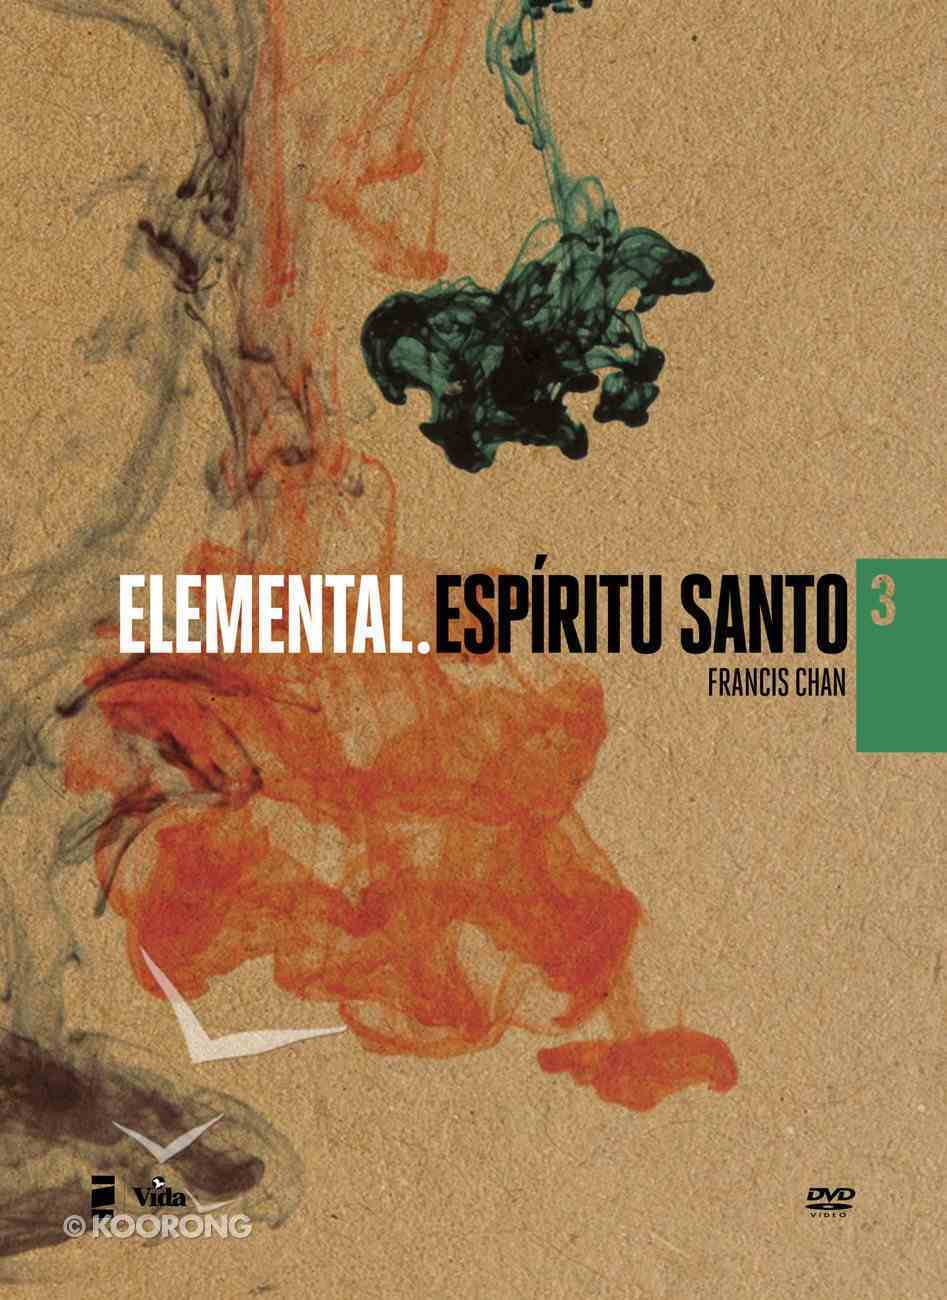 Elemental Espiritu Santo (Basic: Holy Spirit) (Volume 3) (#03 in Basic. Dvd Series) DVD